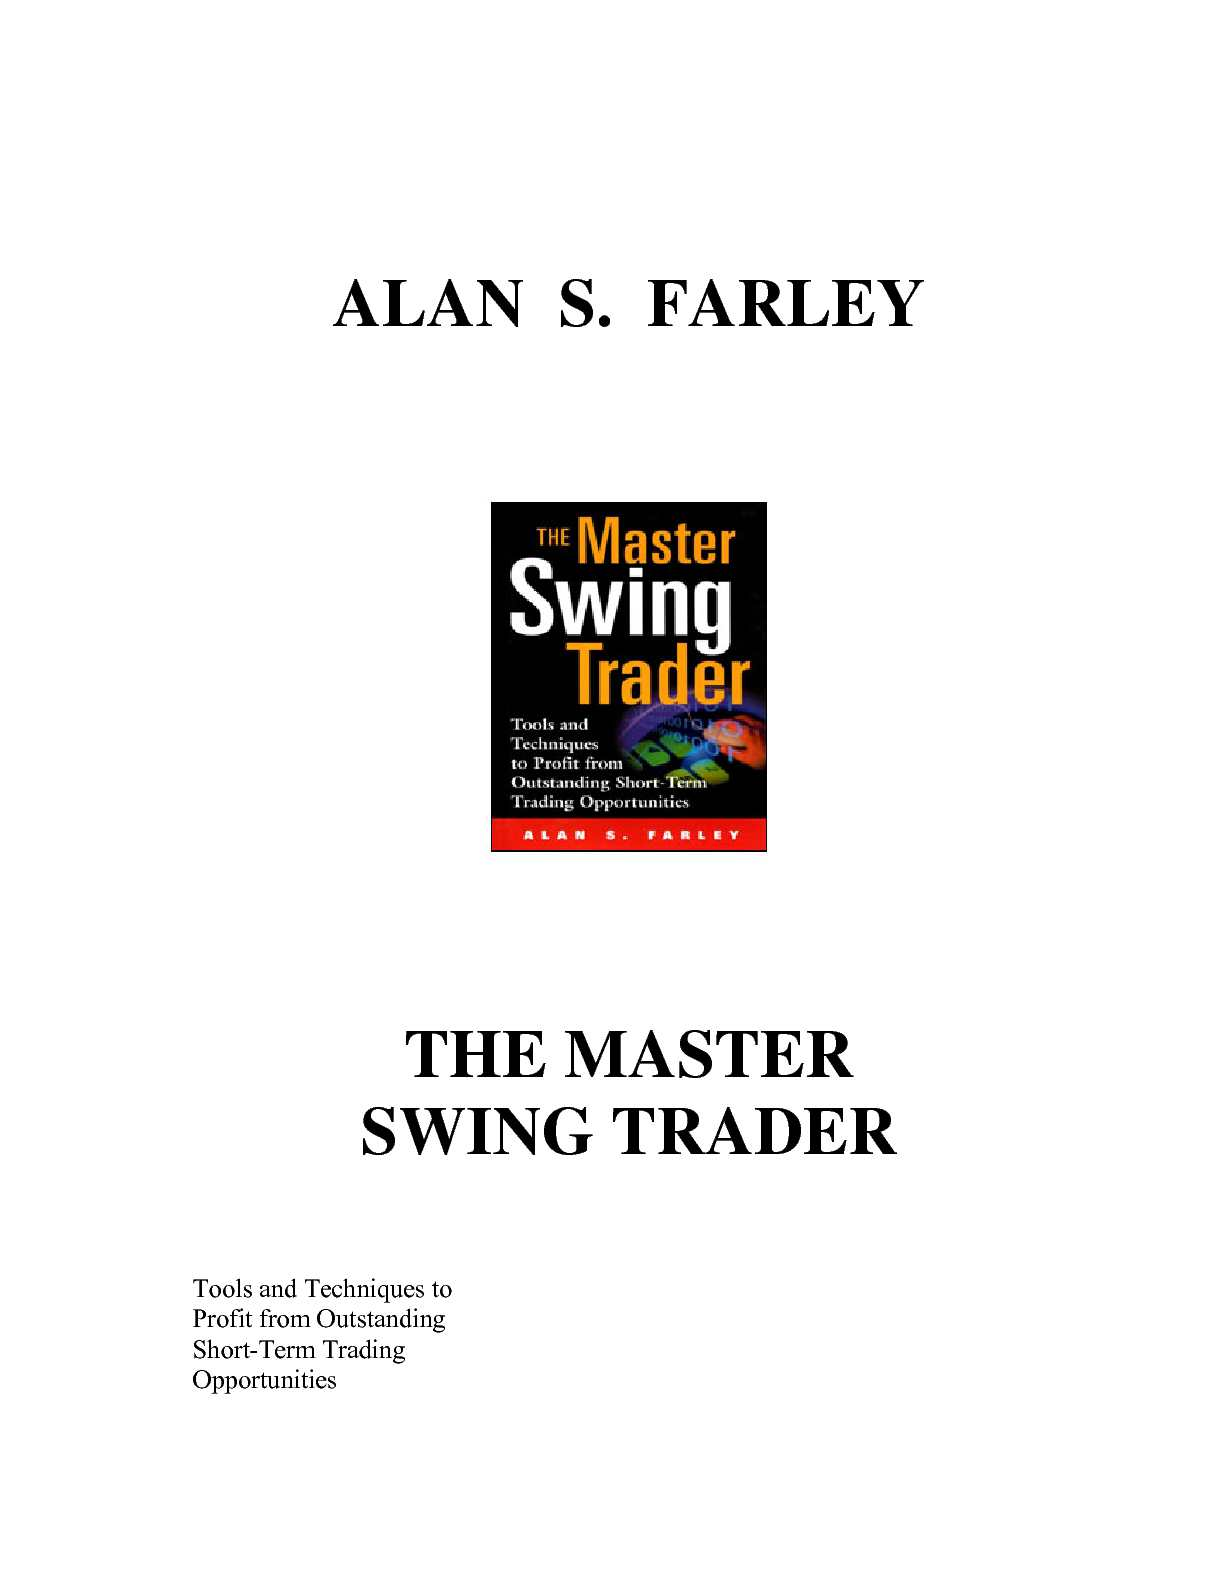 Calaméo - alan farley - the master swing trader (1)